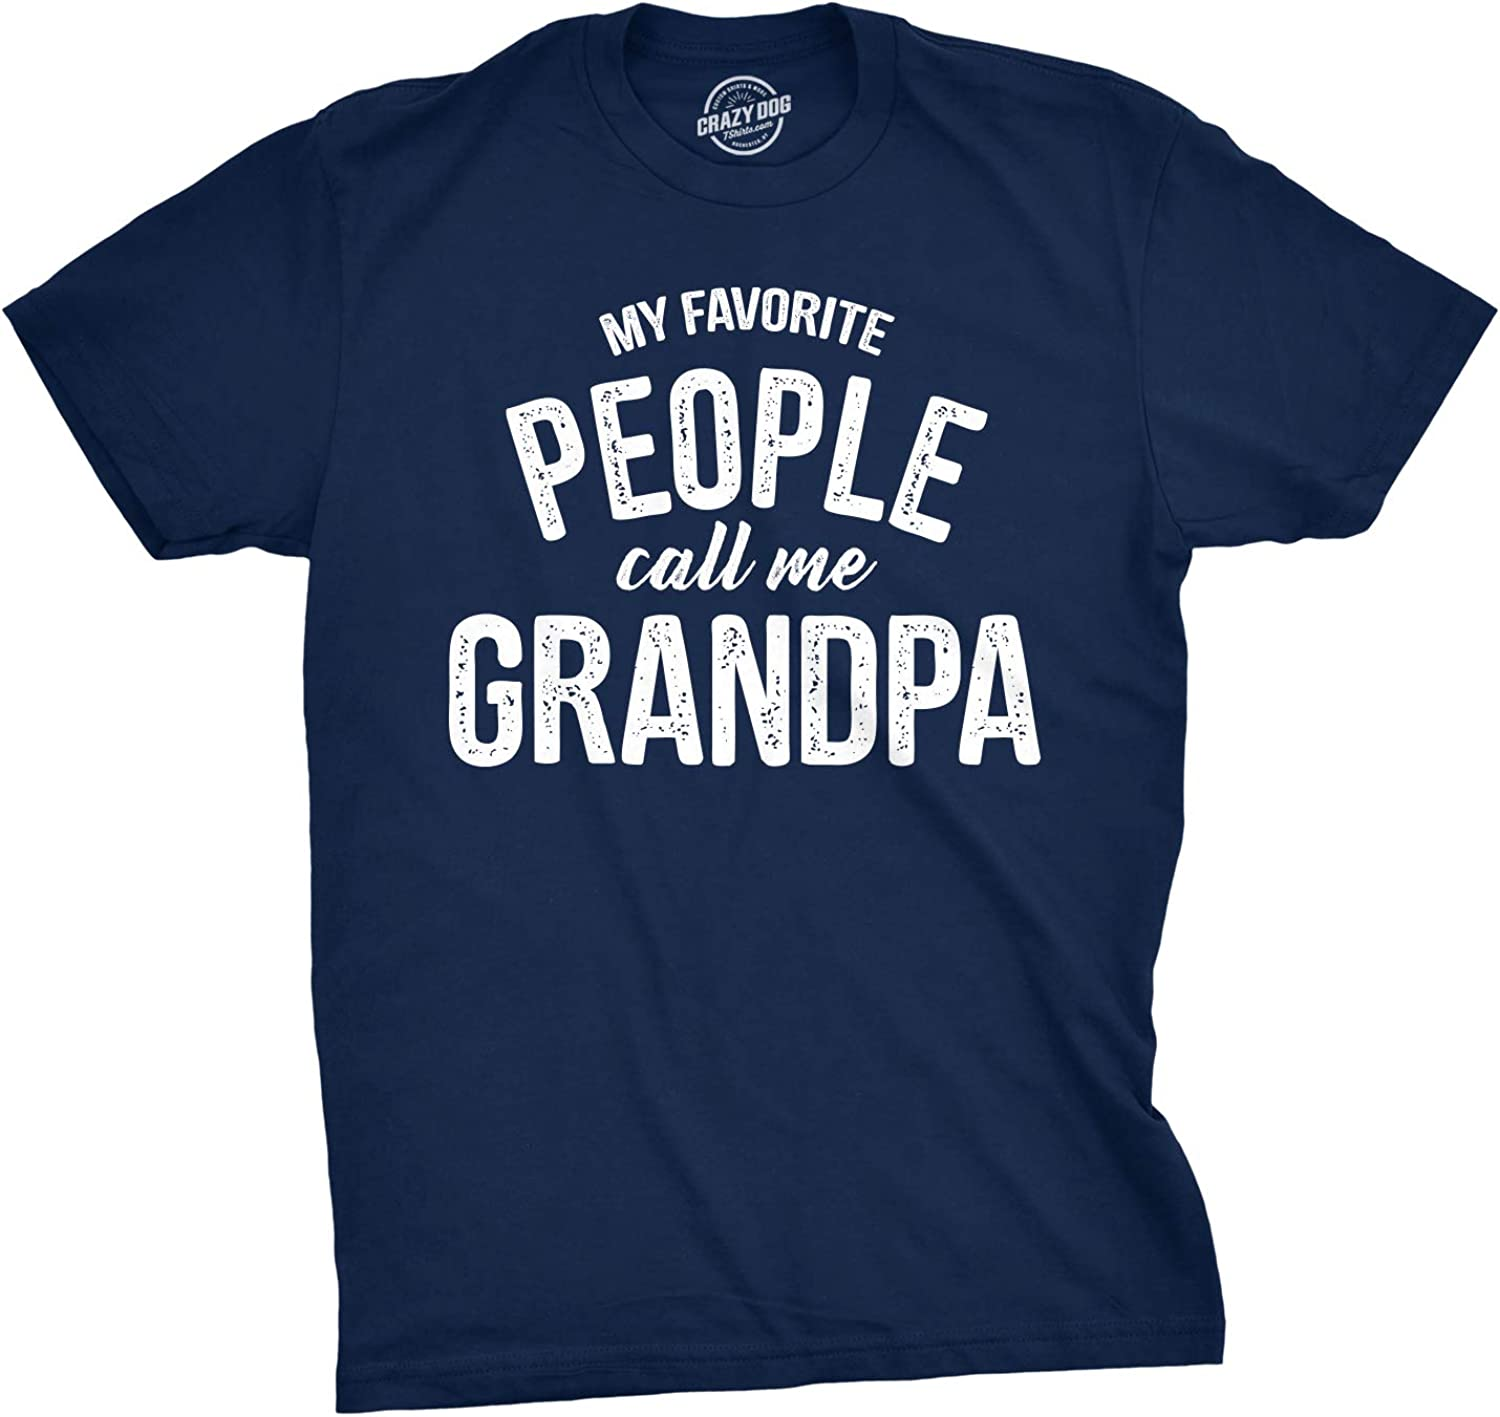 Mens My Favorite People Call Me Grandpa Tshirt Funny Fathers Day Tee for Guys